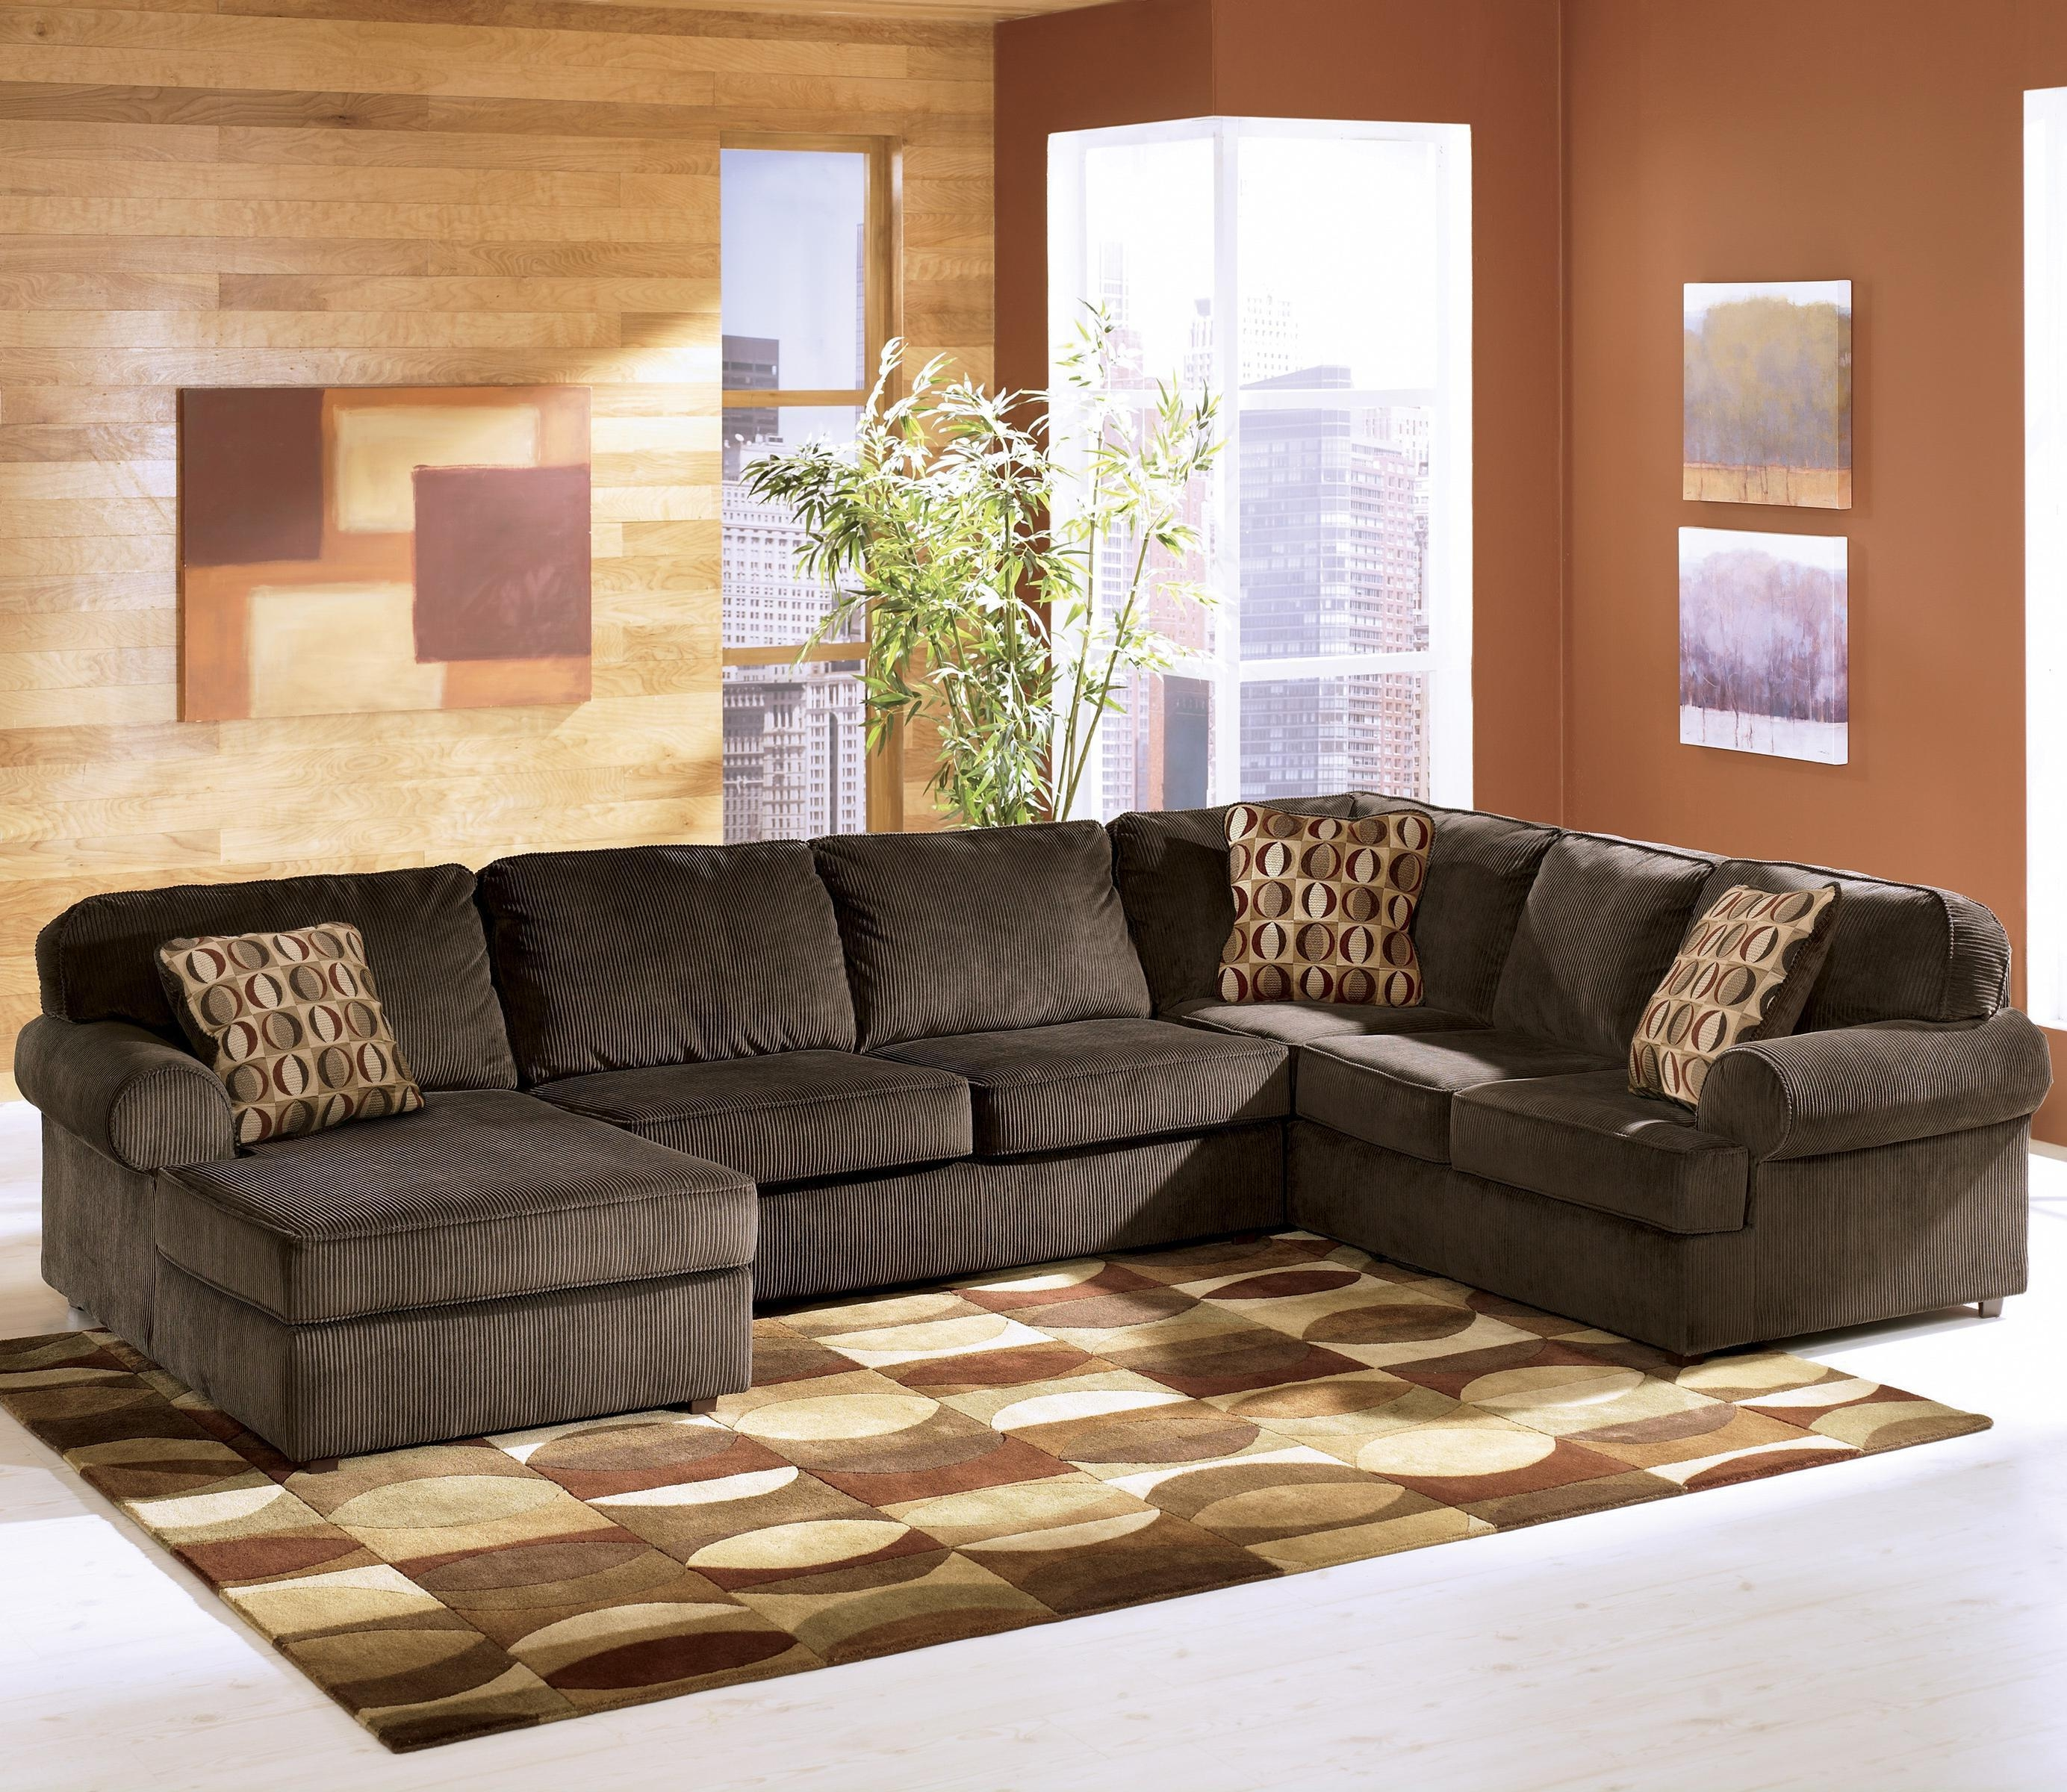 Decorating: Fill Your Living Room With Elegant Ashley Furniture Pertaining To Ashley Furniture Grenada Sectional (Image 7 of 15)